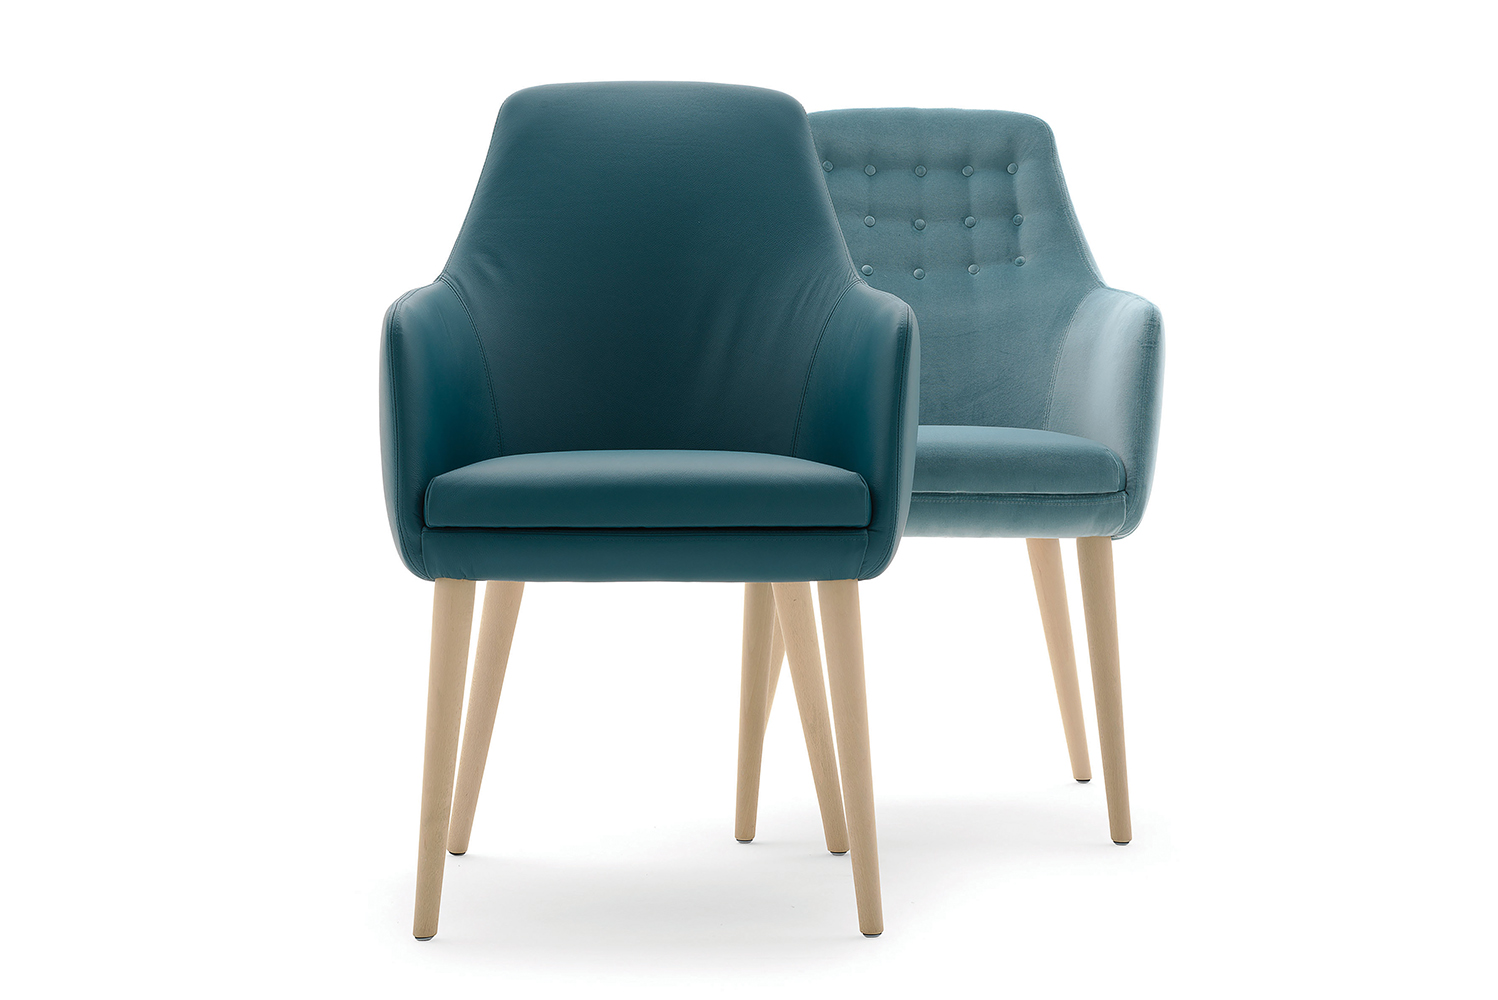 The chair's aesthetic makes it ideal for lounge, hospitality and commercial spaces.